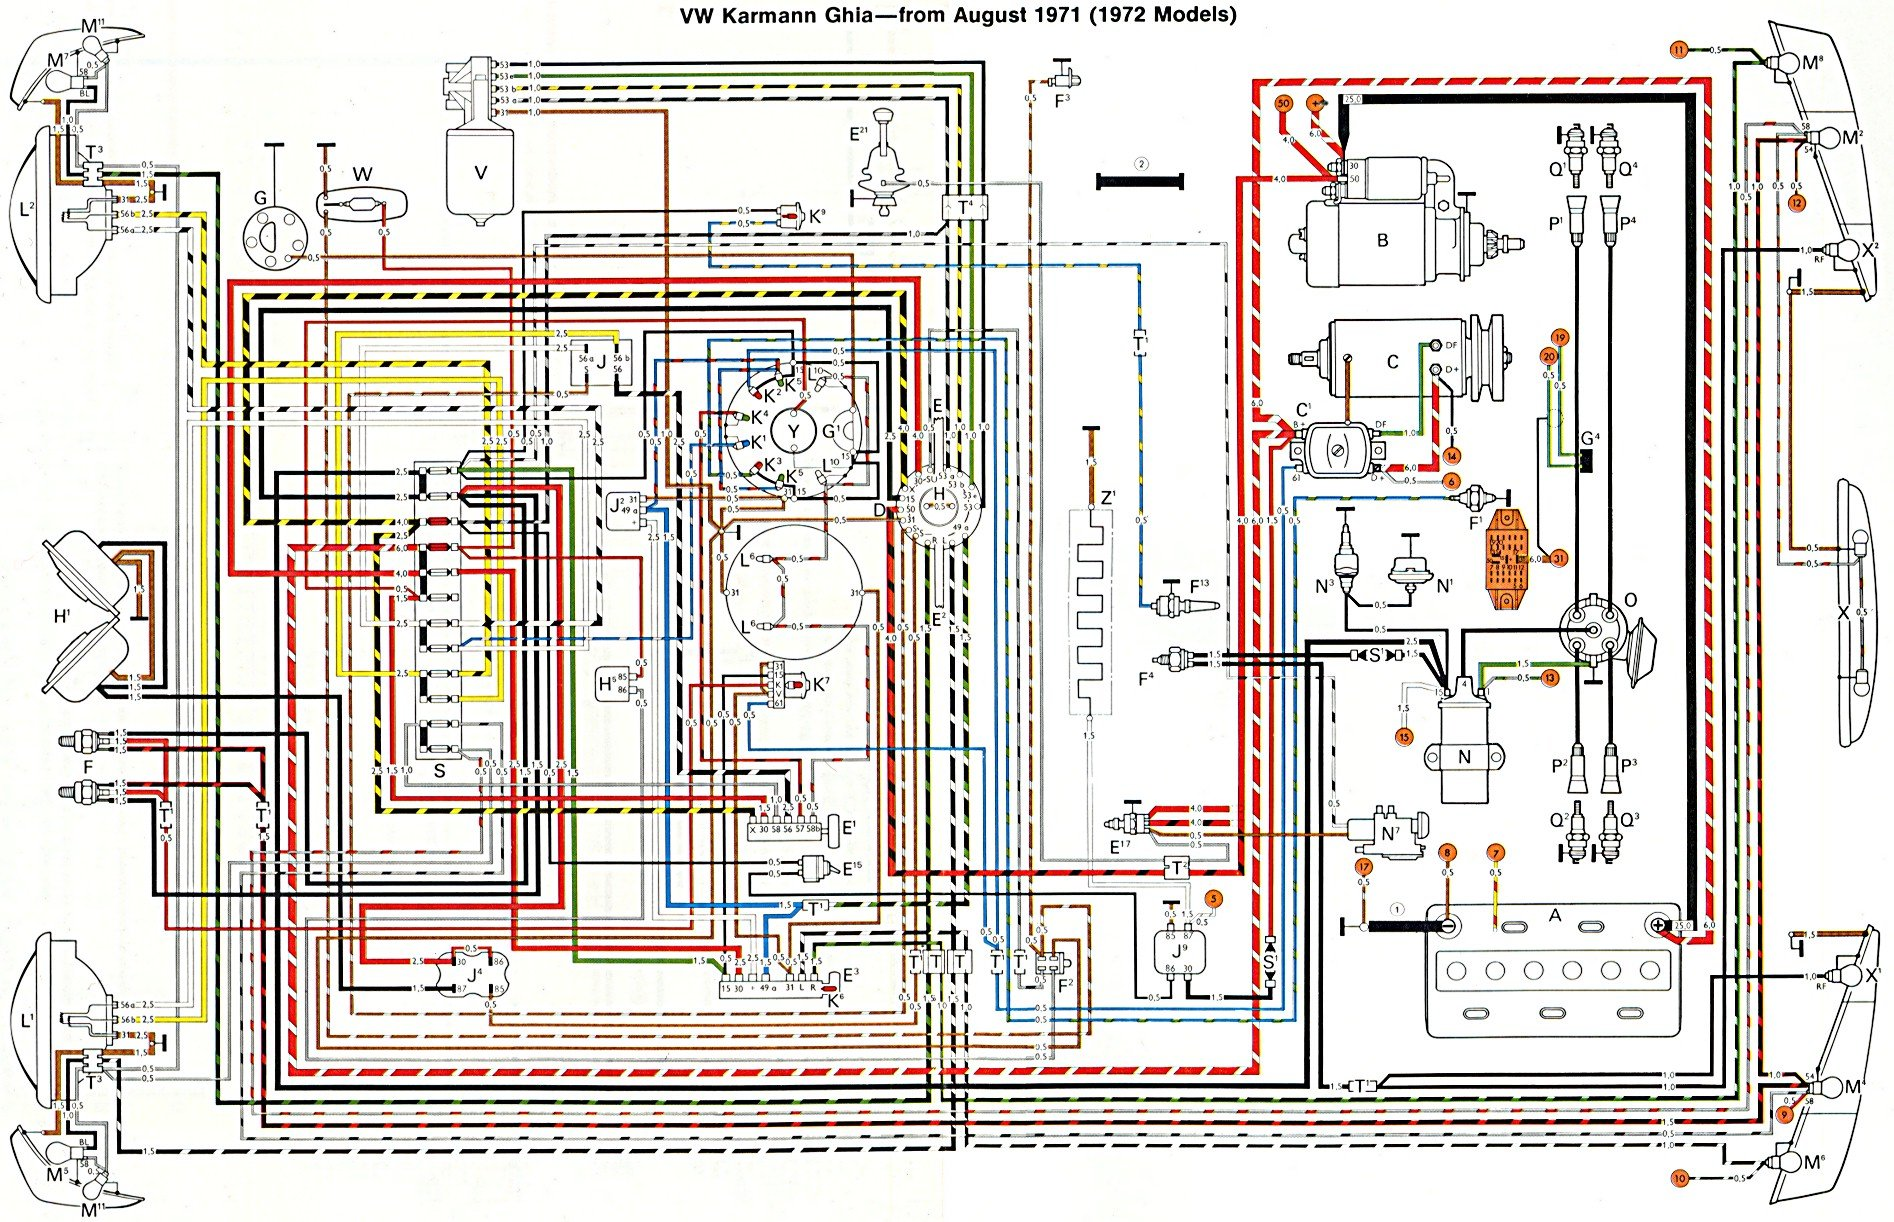 72ghia 1971 karmann ghia wiring diagram karmann ghia wiring harness Wiring Harness Diagram at fashall.co